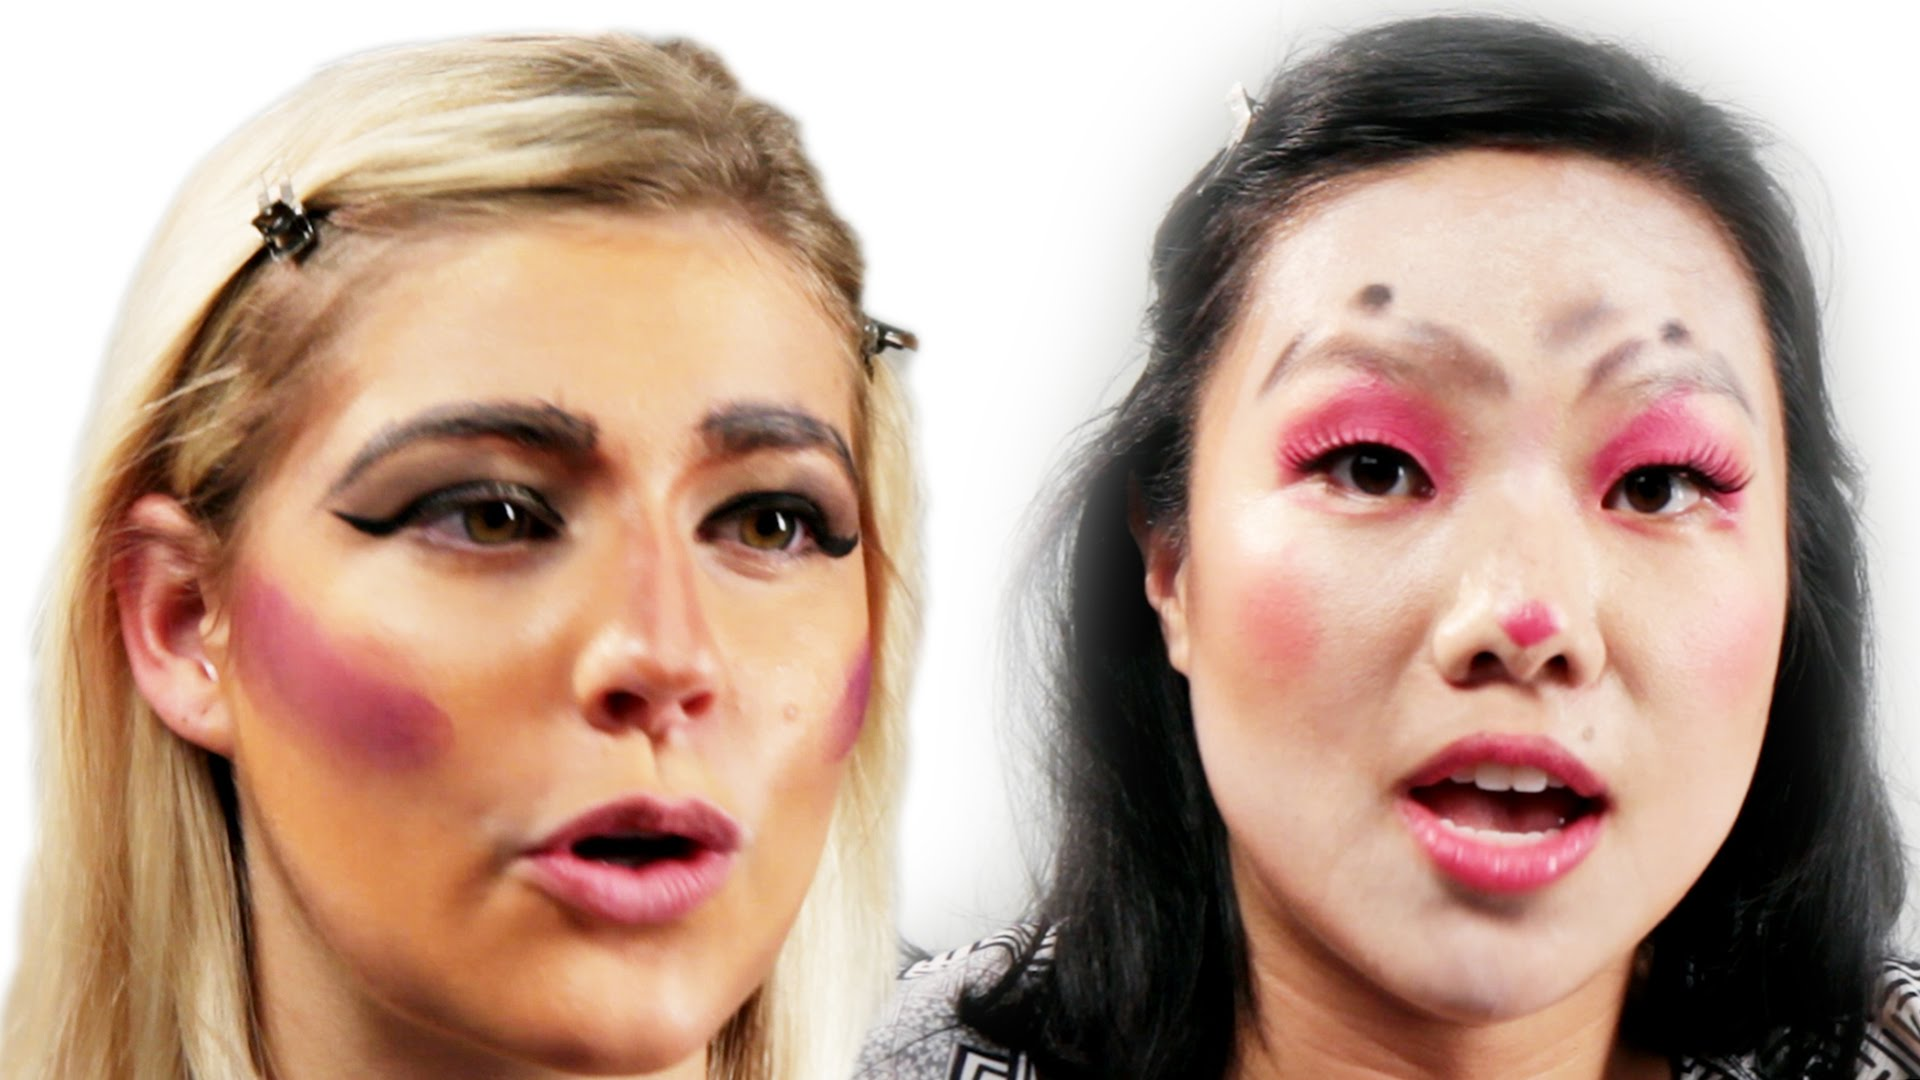 Woman Get Pranked With Terrible Makeovers